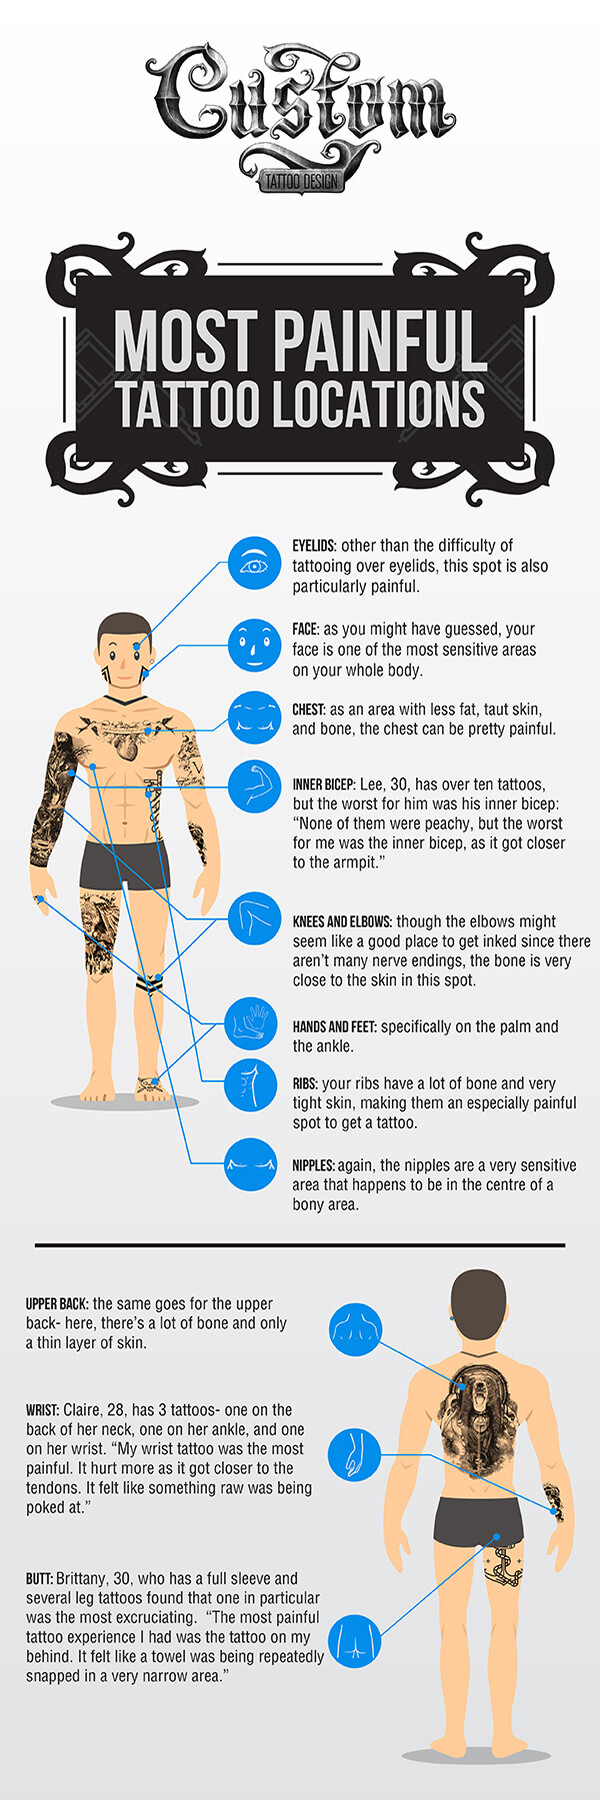 medium resolution of most painful places to get tattooed infographic